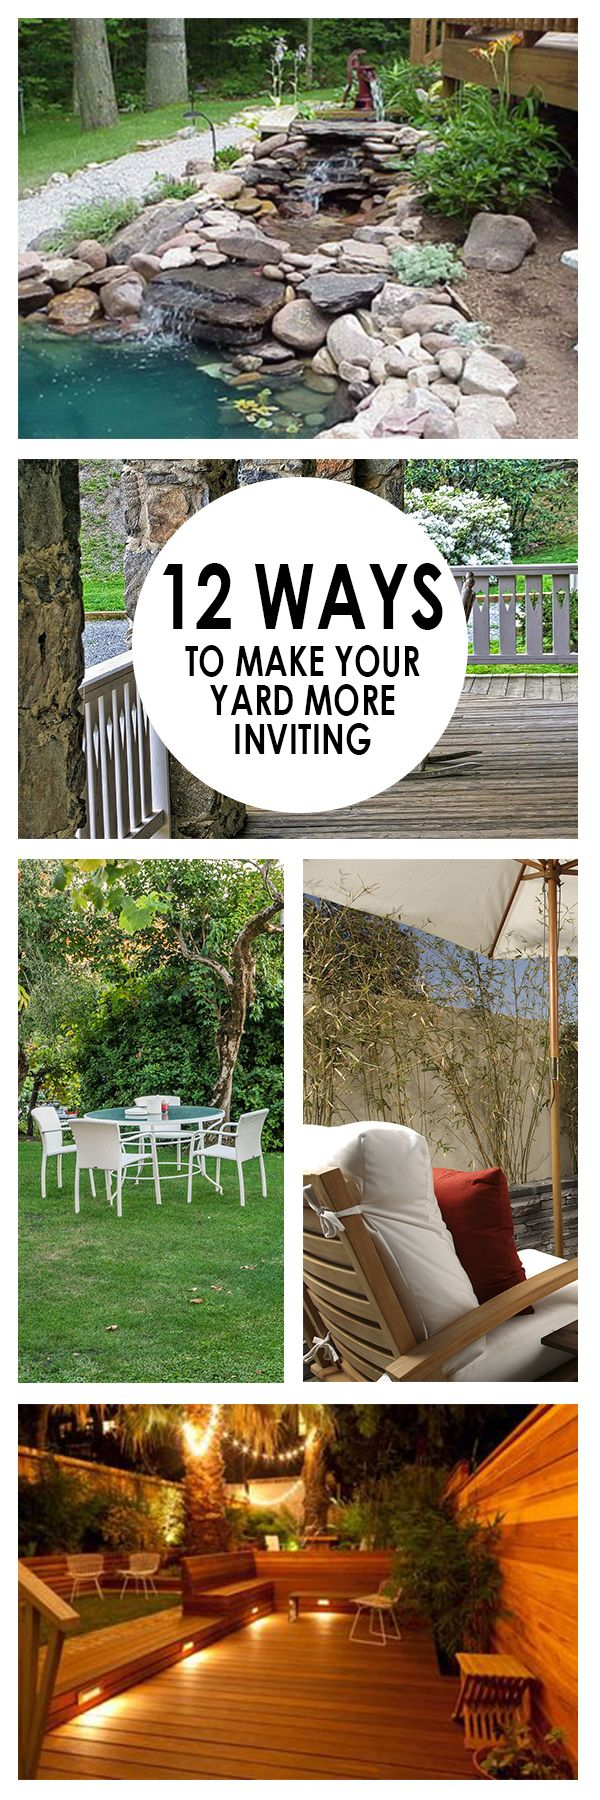 12 Ways to Make Your Yard More Inviting